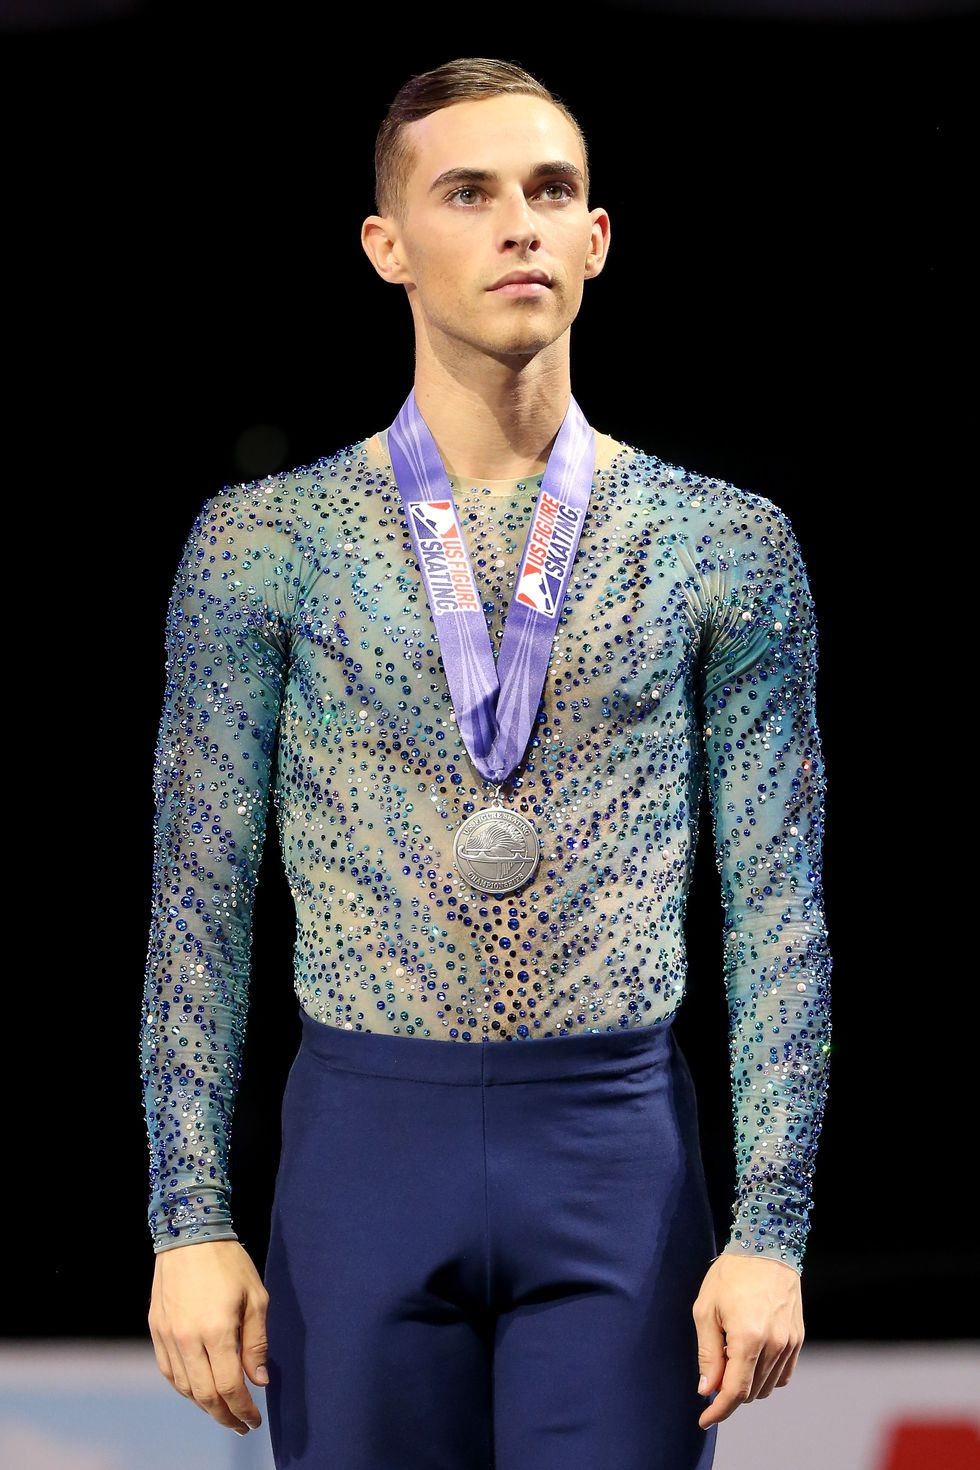 Adam Rippon, USA The figure skater on the podium after medaling at the 2018 Prudential U.S. Figure Skating Championships.